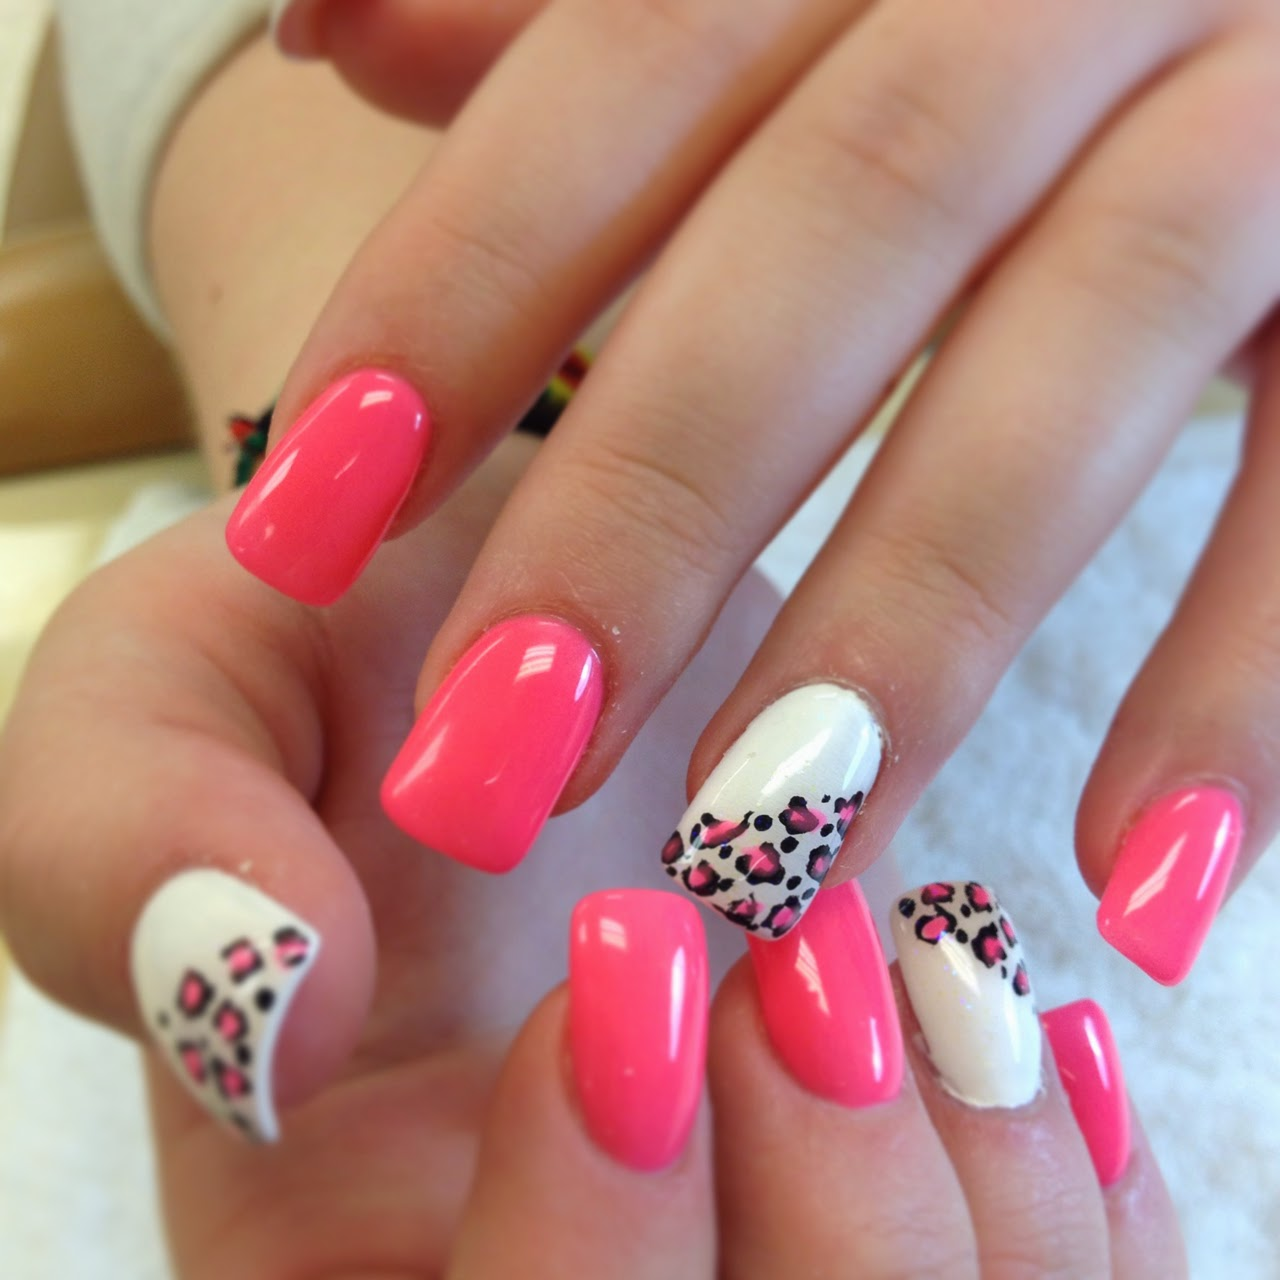 Adorable Nail Art: Creative Manicure Ideas I Love